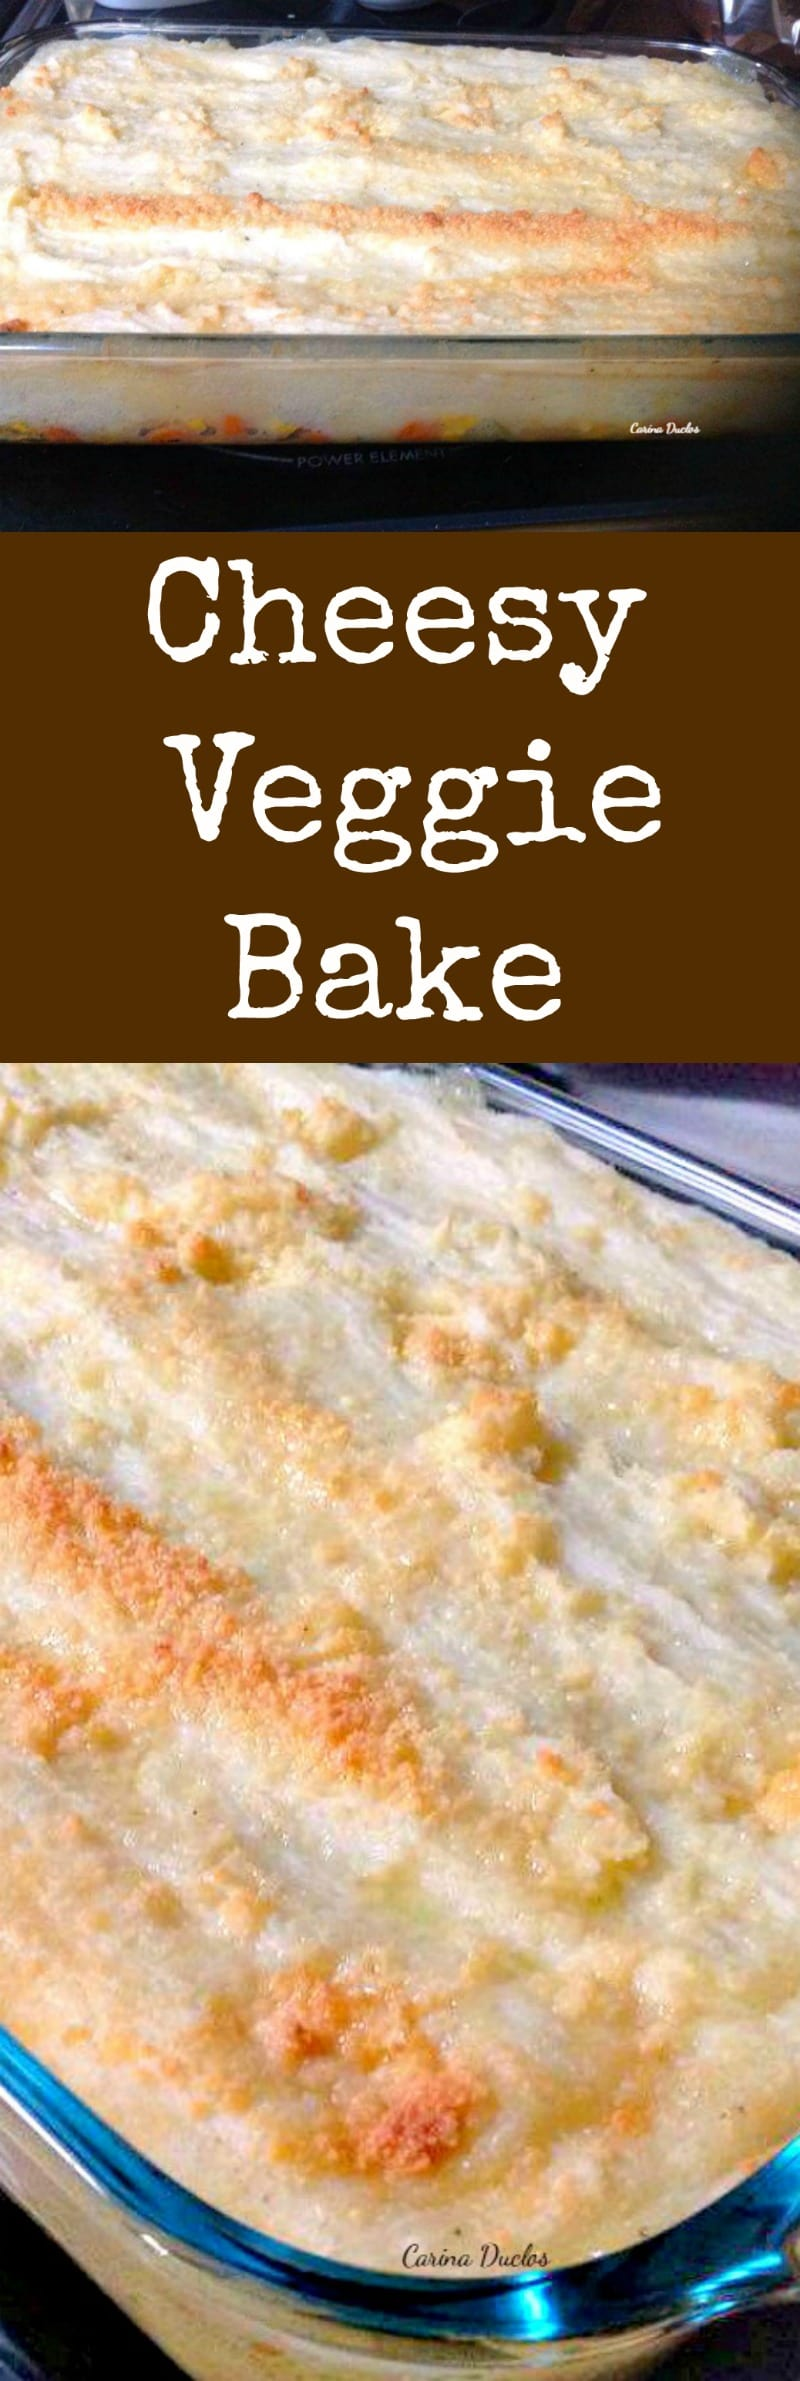 Cheesy Veggie Bake! This is an incredibly easy and versatile recipe, suitable as a side dish or a main meal. Options to add extra cheese for the cheese lovers too! Perfect for Thanksgiving. Make ahead and freeze then simply heat through when you want to serve. | Lovefoodies.com